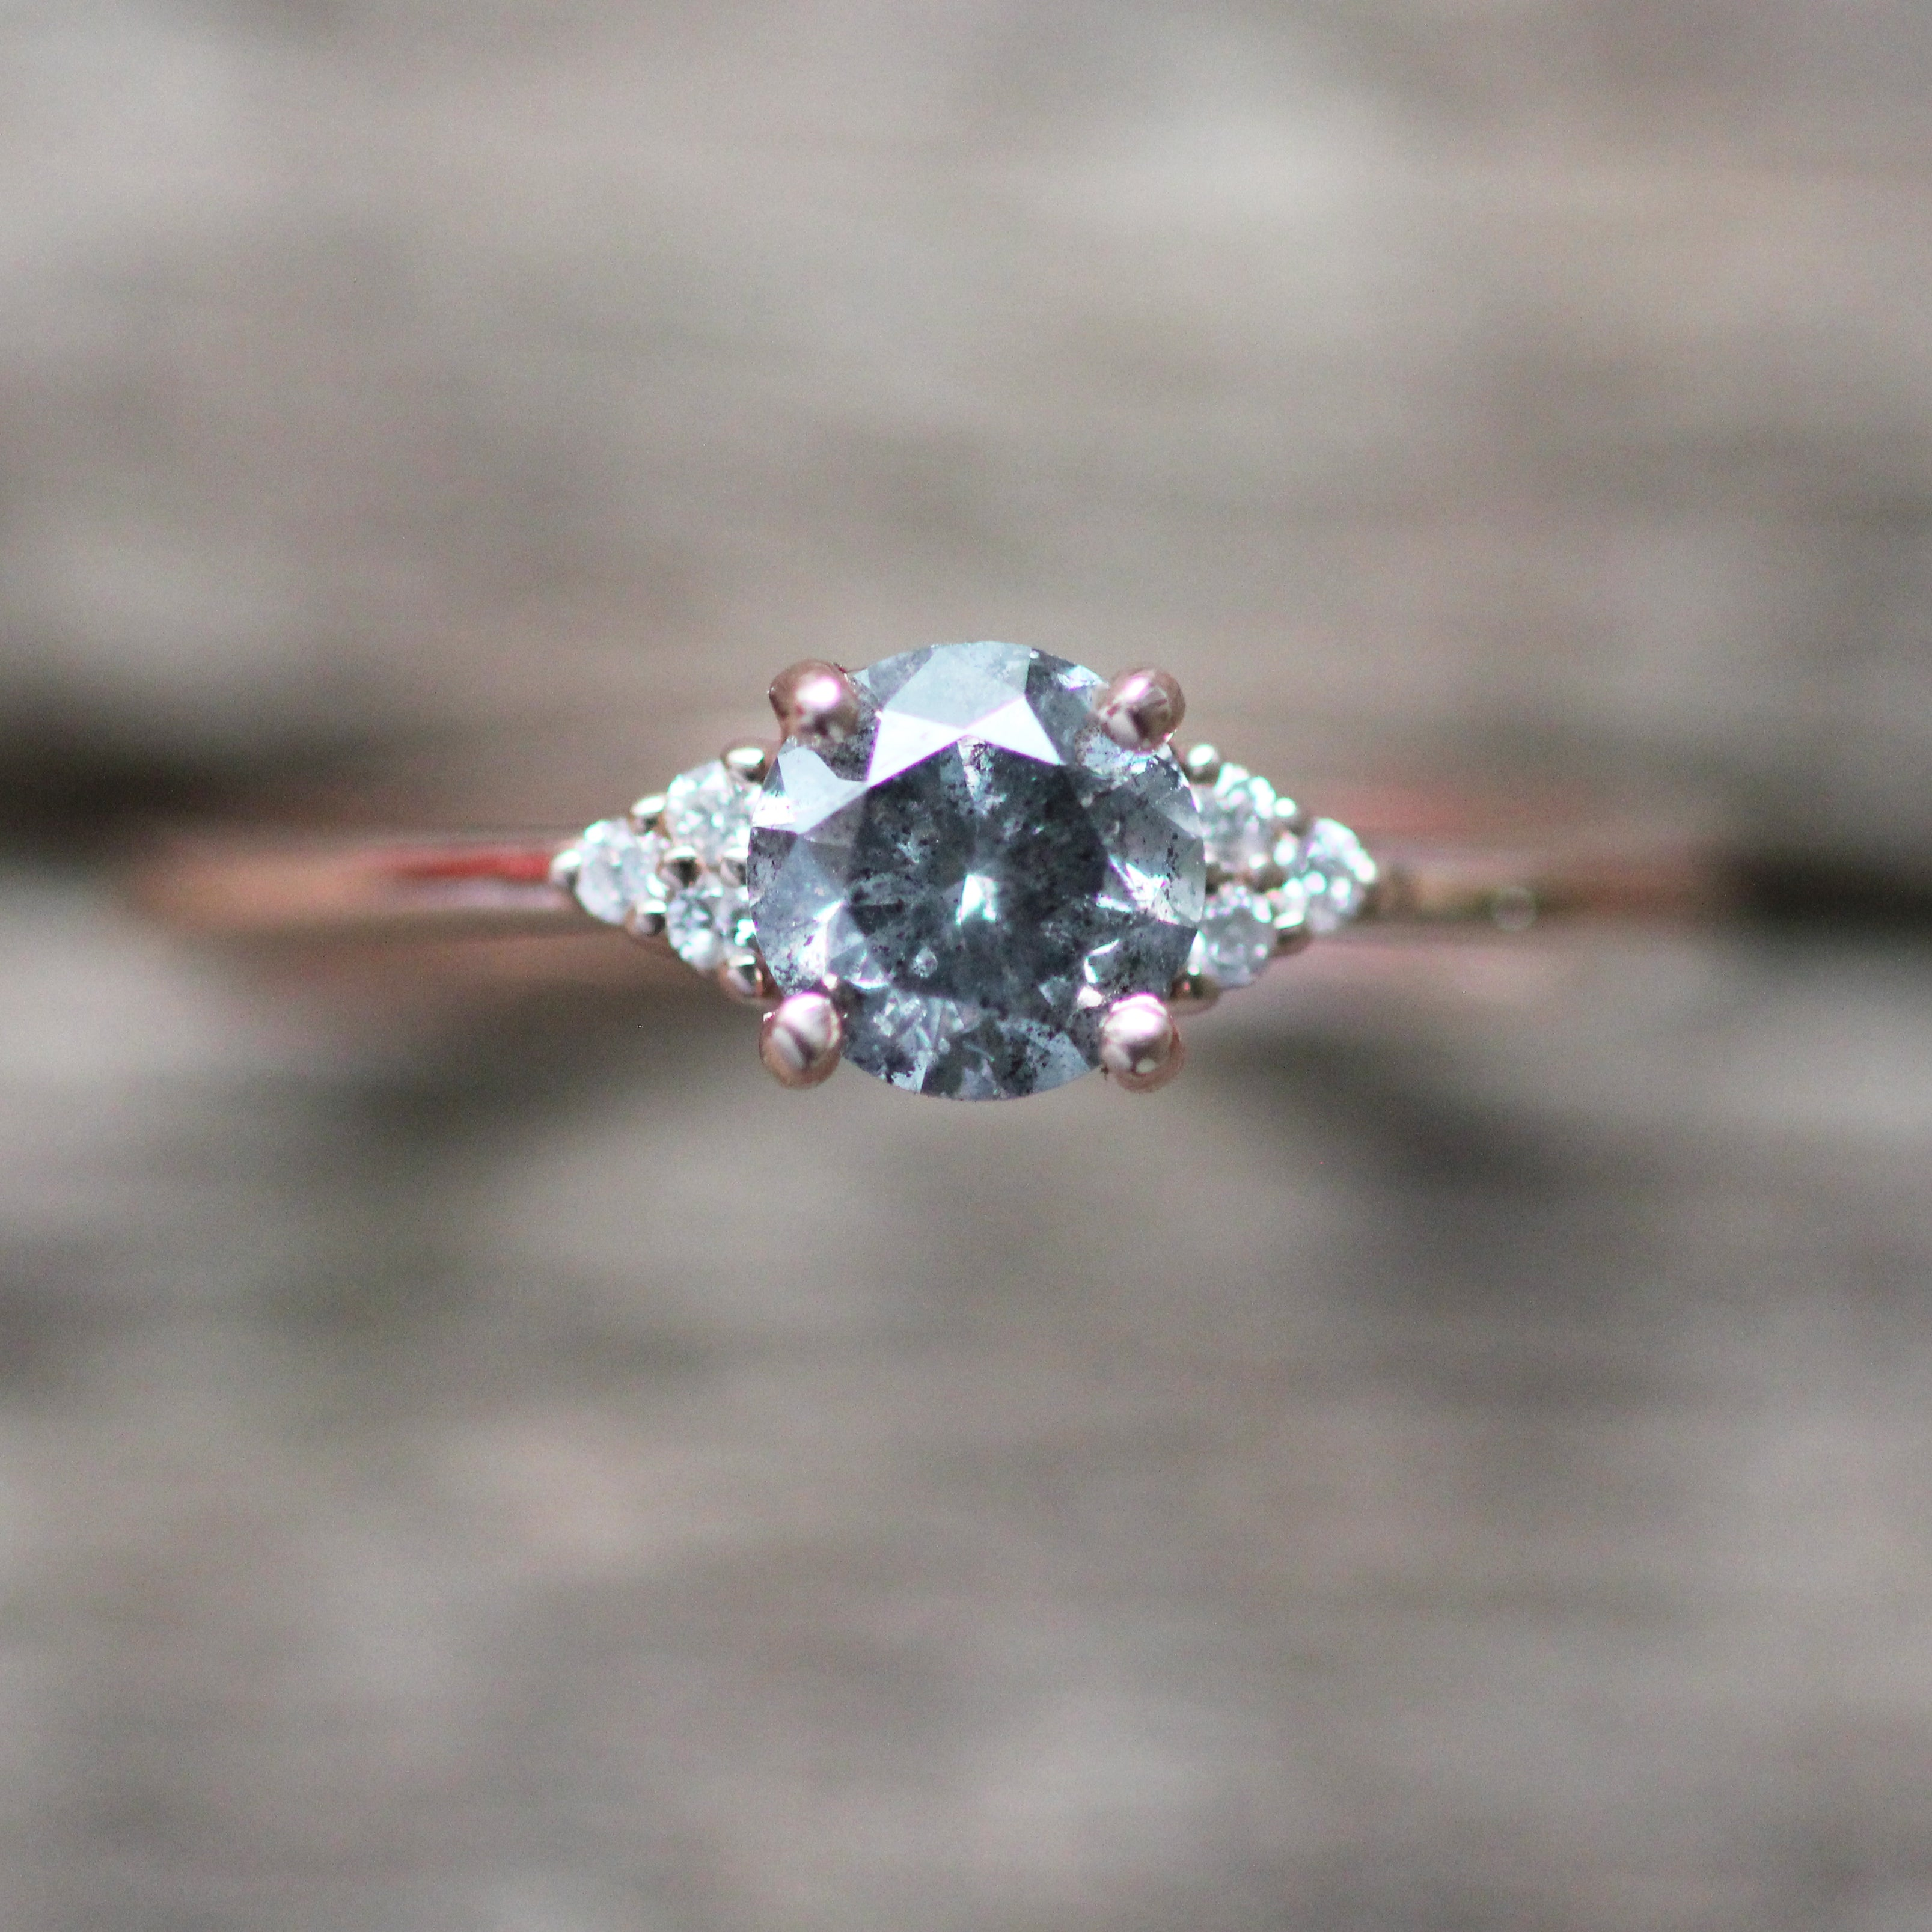 Imogene setting - Midwinter Co. Alternative Bridal Rings and Modern Fine Jewelry